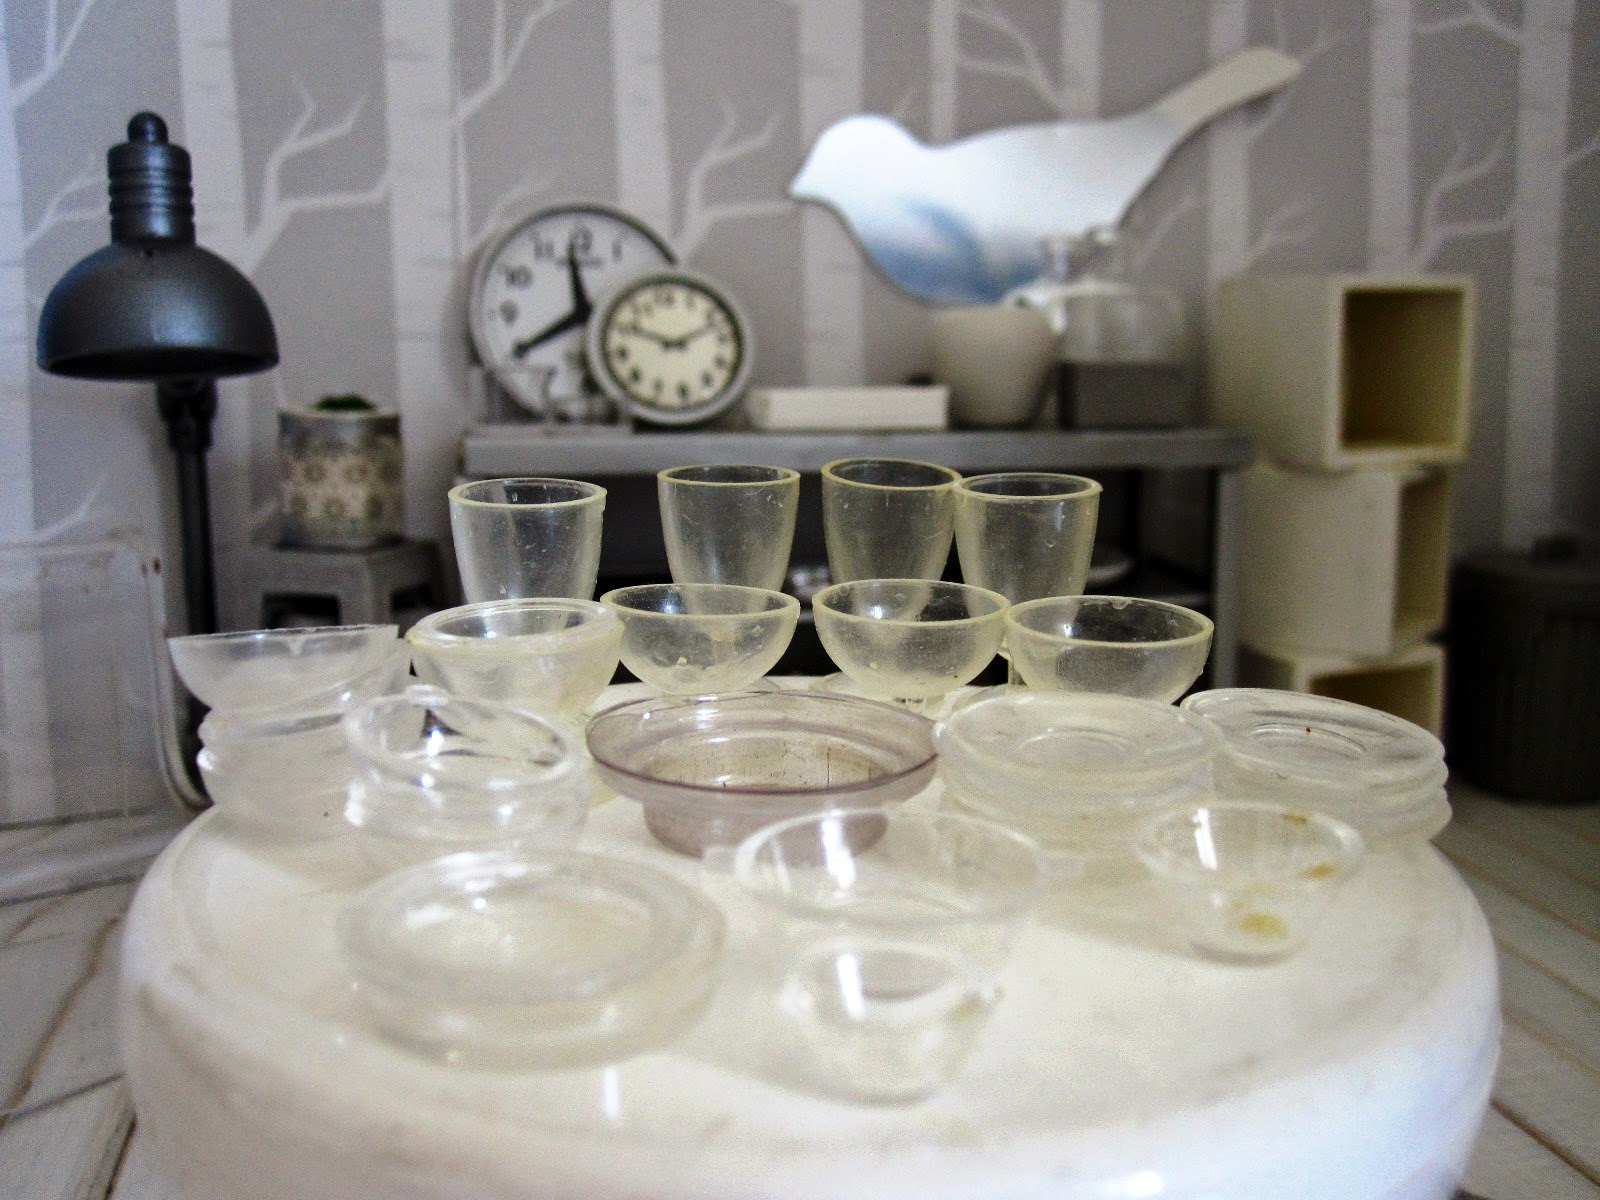 Close up of  a modern dolls' house miniature display of glass bowls, plates and glasses, set out on a round white table in a homeware store.